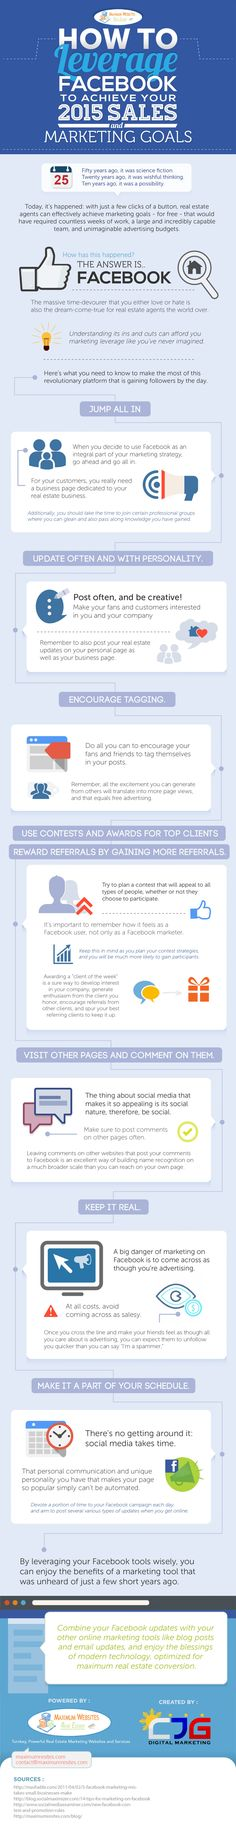 1000+ images about Facebook on Pinterest | Facebook, Marketing and ...